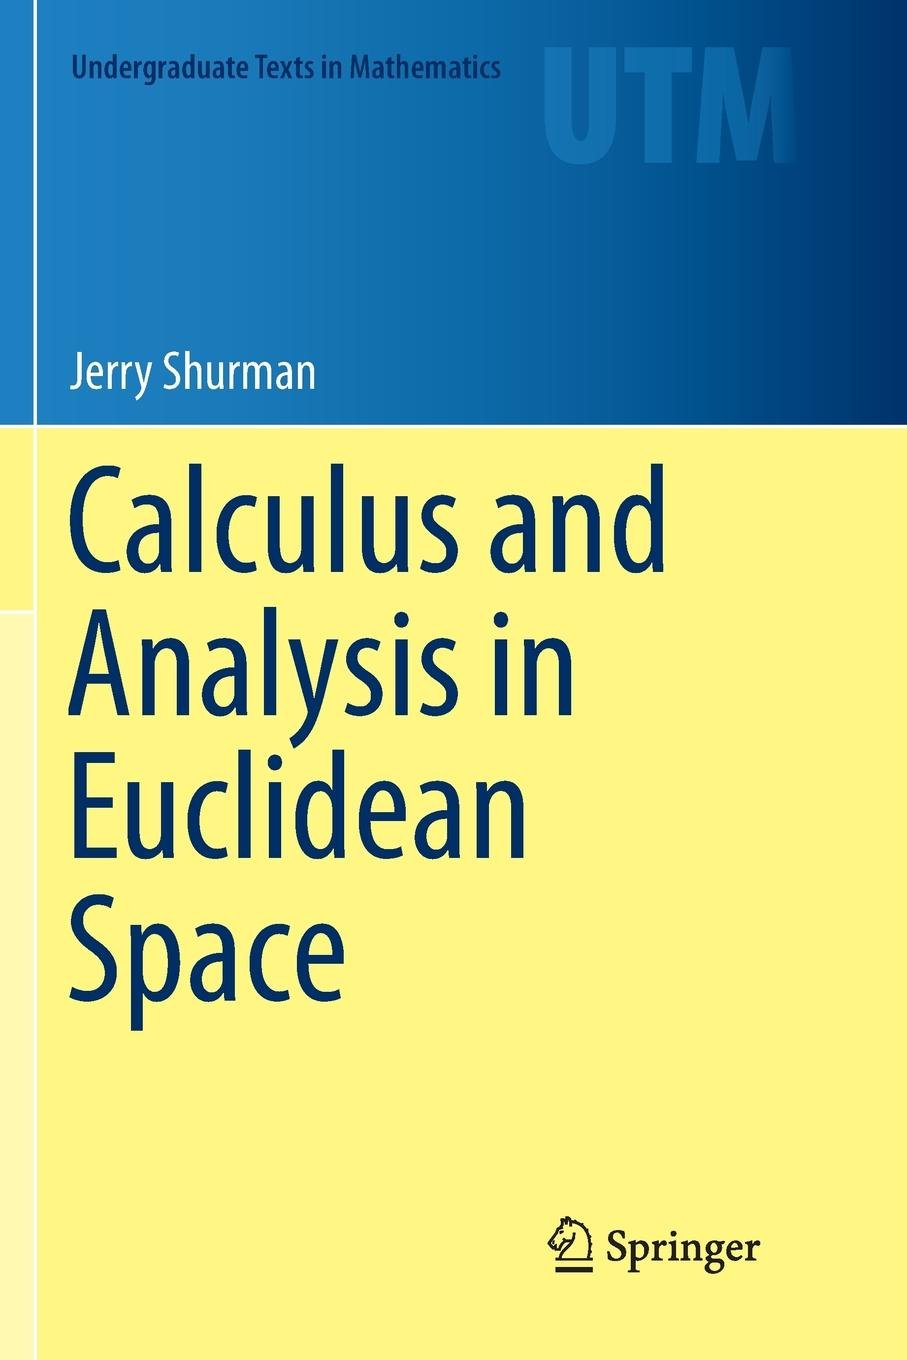 Calculus and Analysis in Euclidean Space (Undergraduate Texts in Mathematics):  Jerry Shurman: 9783319841304: Amazon.com: Books